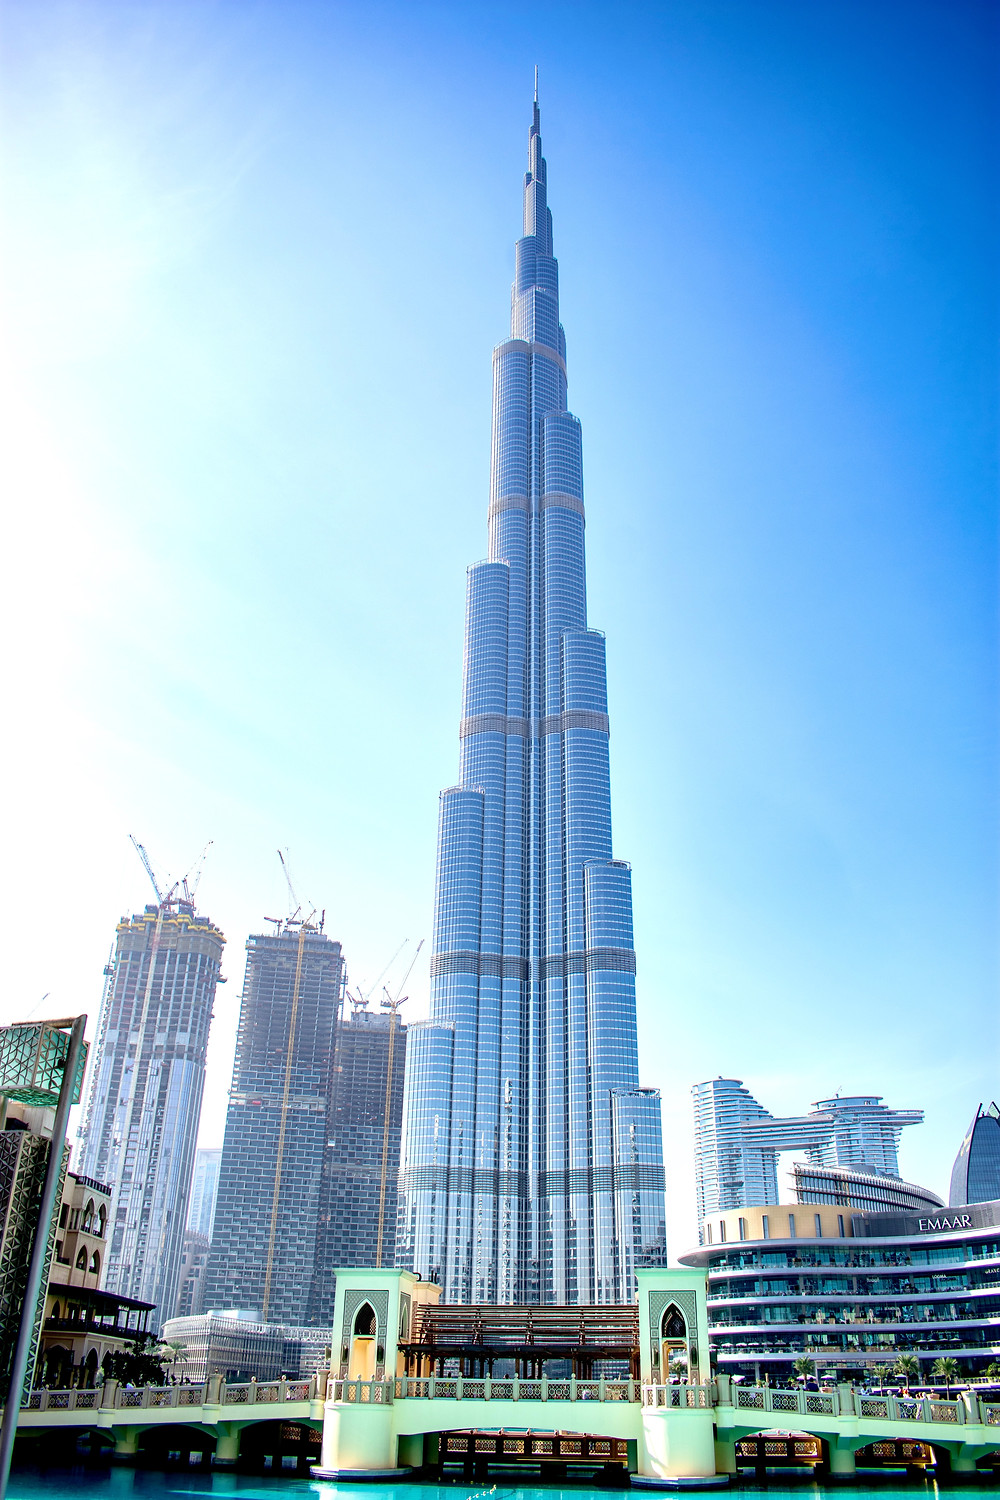 The Burj Khalifa viewed from the ground